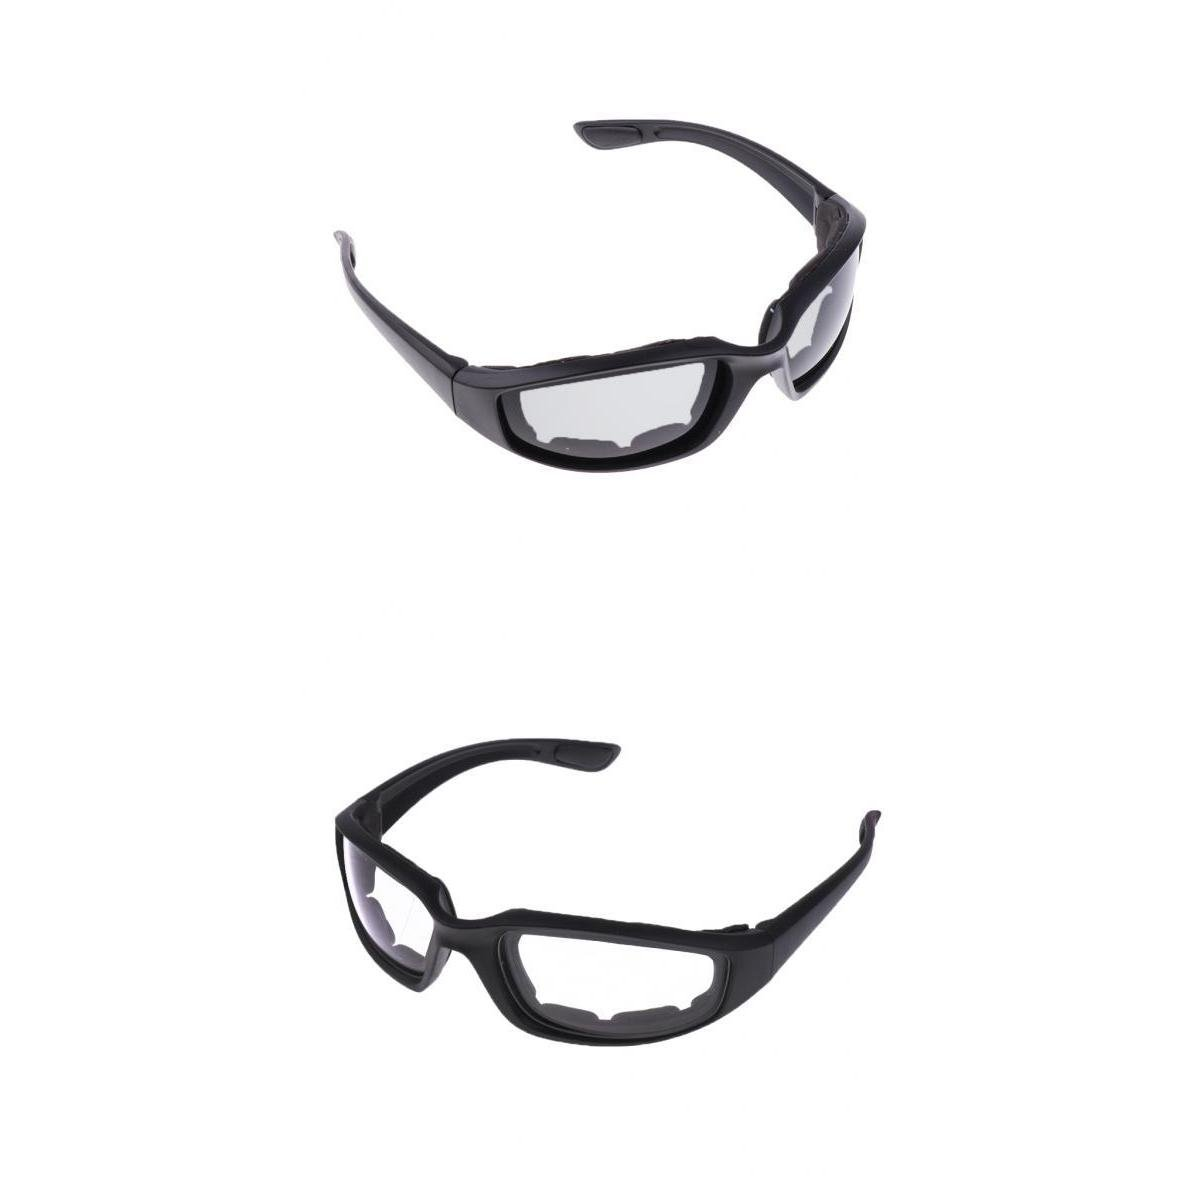 D DOLITY Chopper Wind Resistant//Windproof Pad Sport Sunglasses Motorcycle Riding Glasses